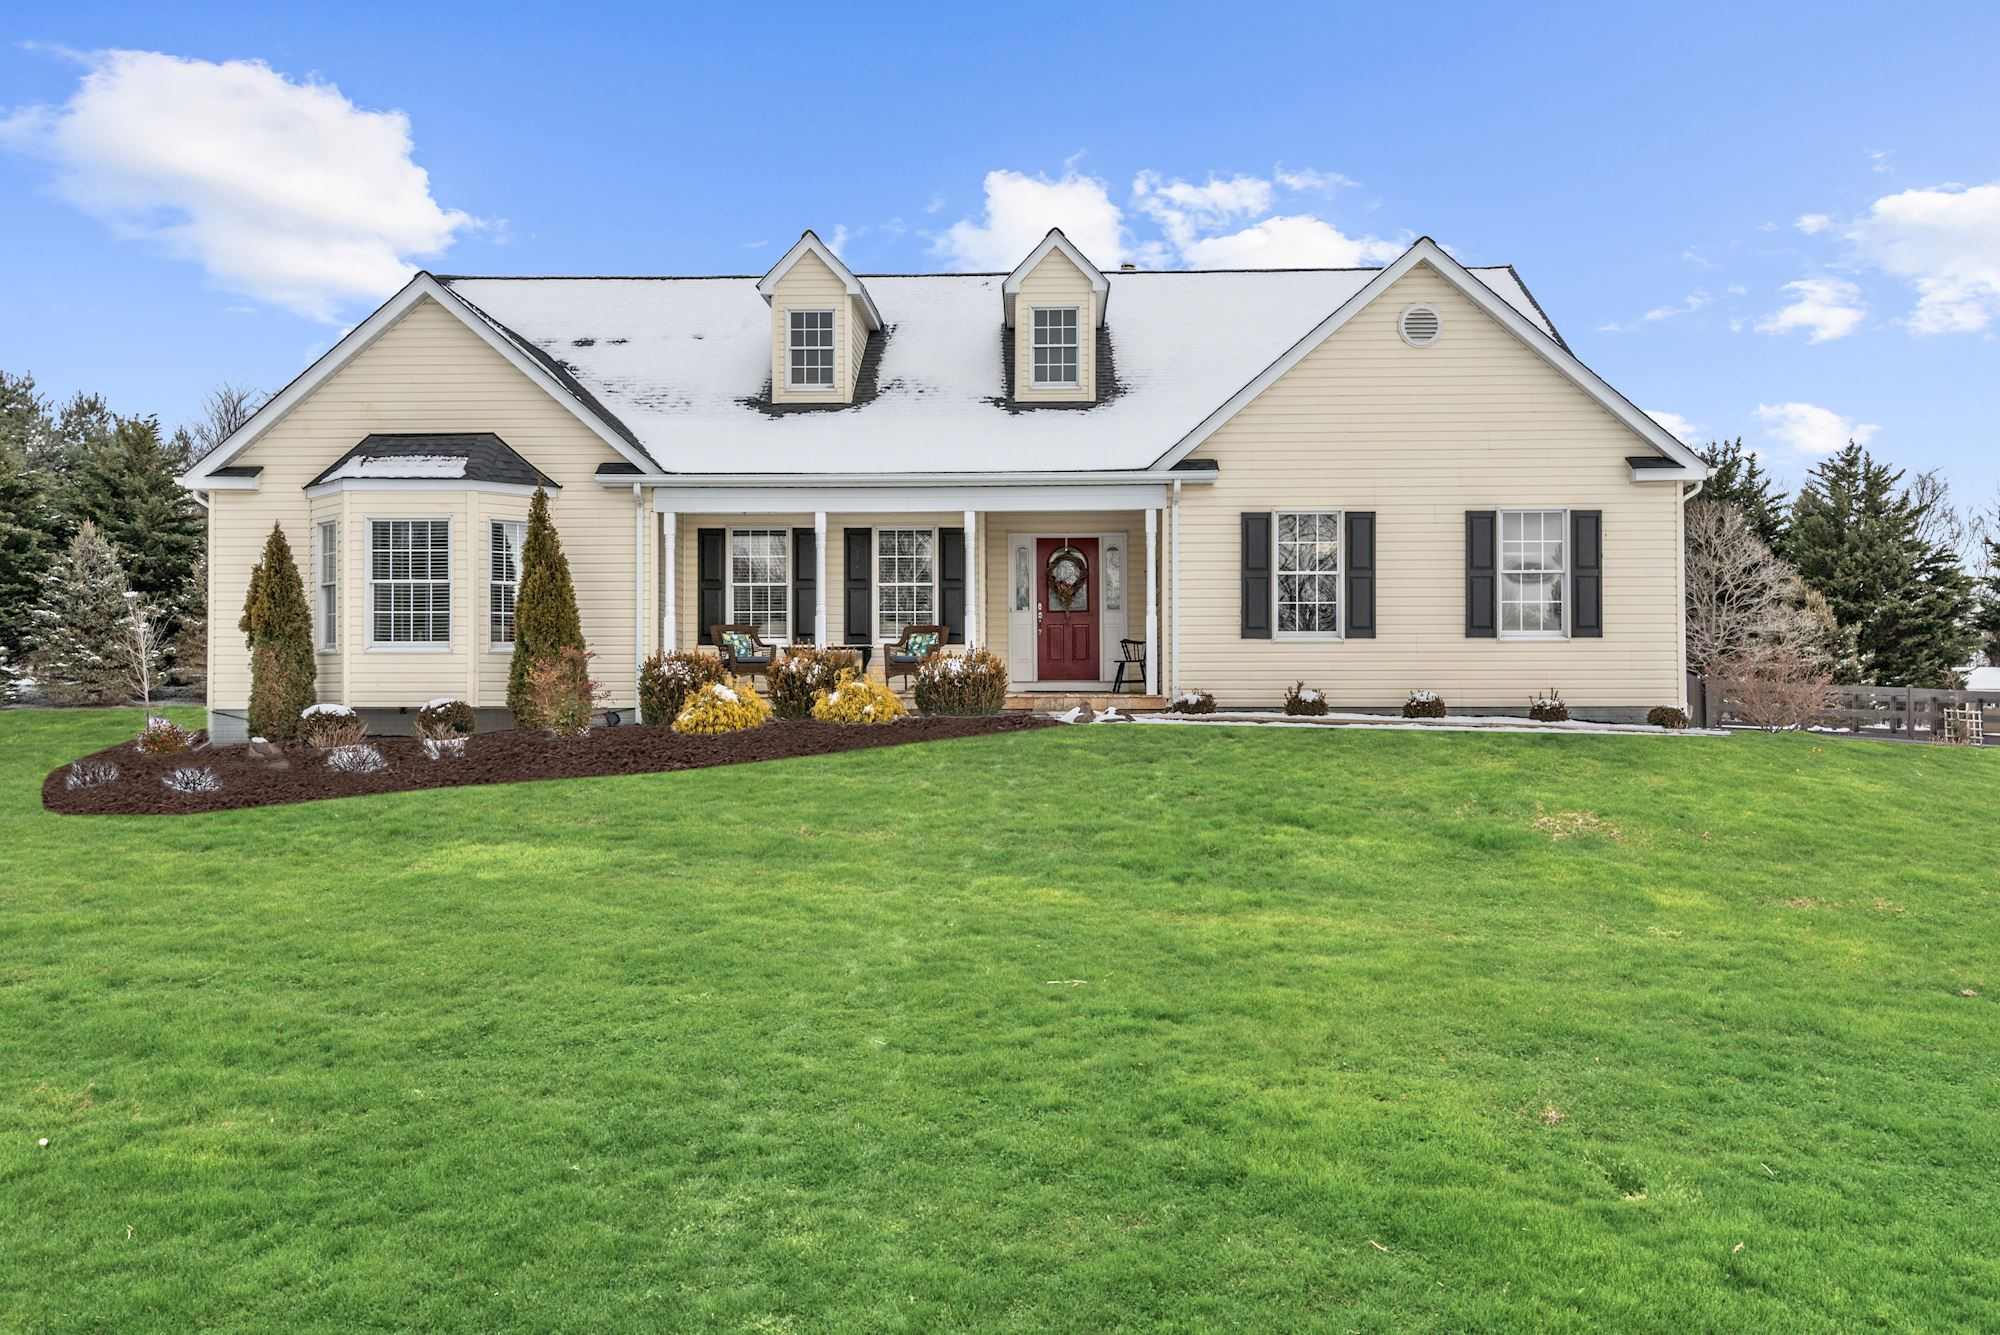 NEW LISTING: Gorgeously Renovated 4 BD At Base of the Blue Ridge Mountains